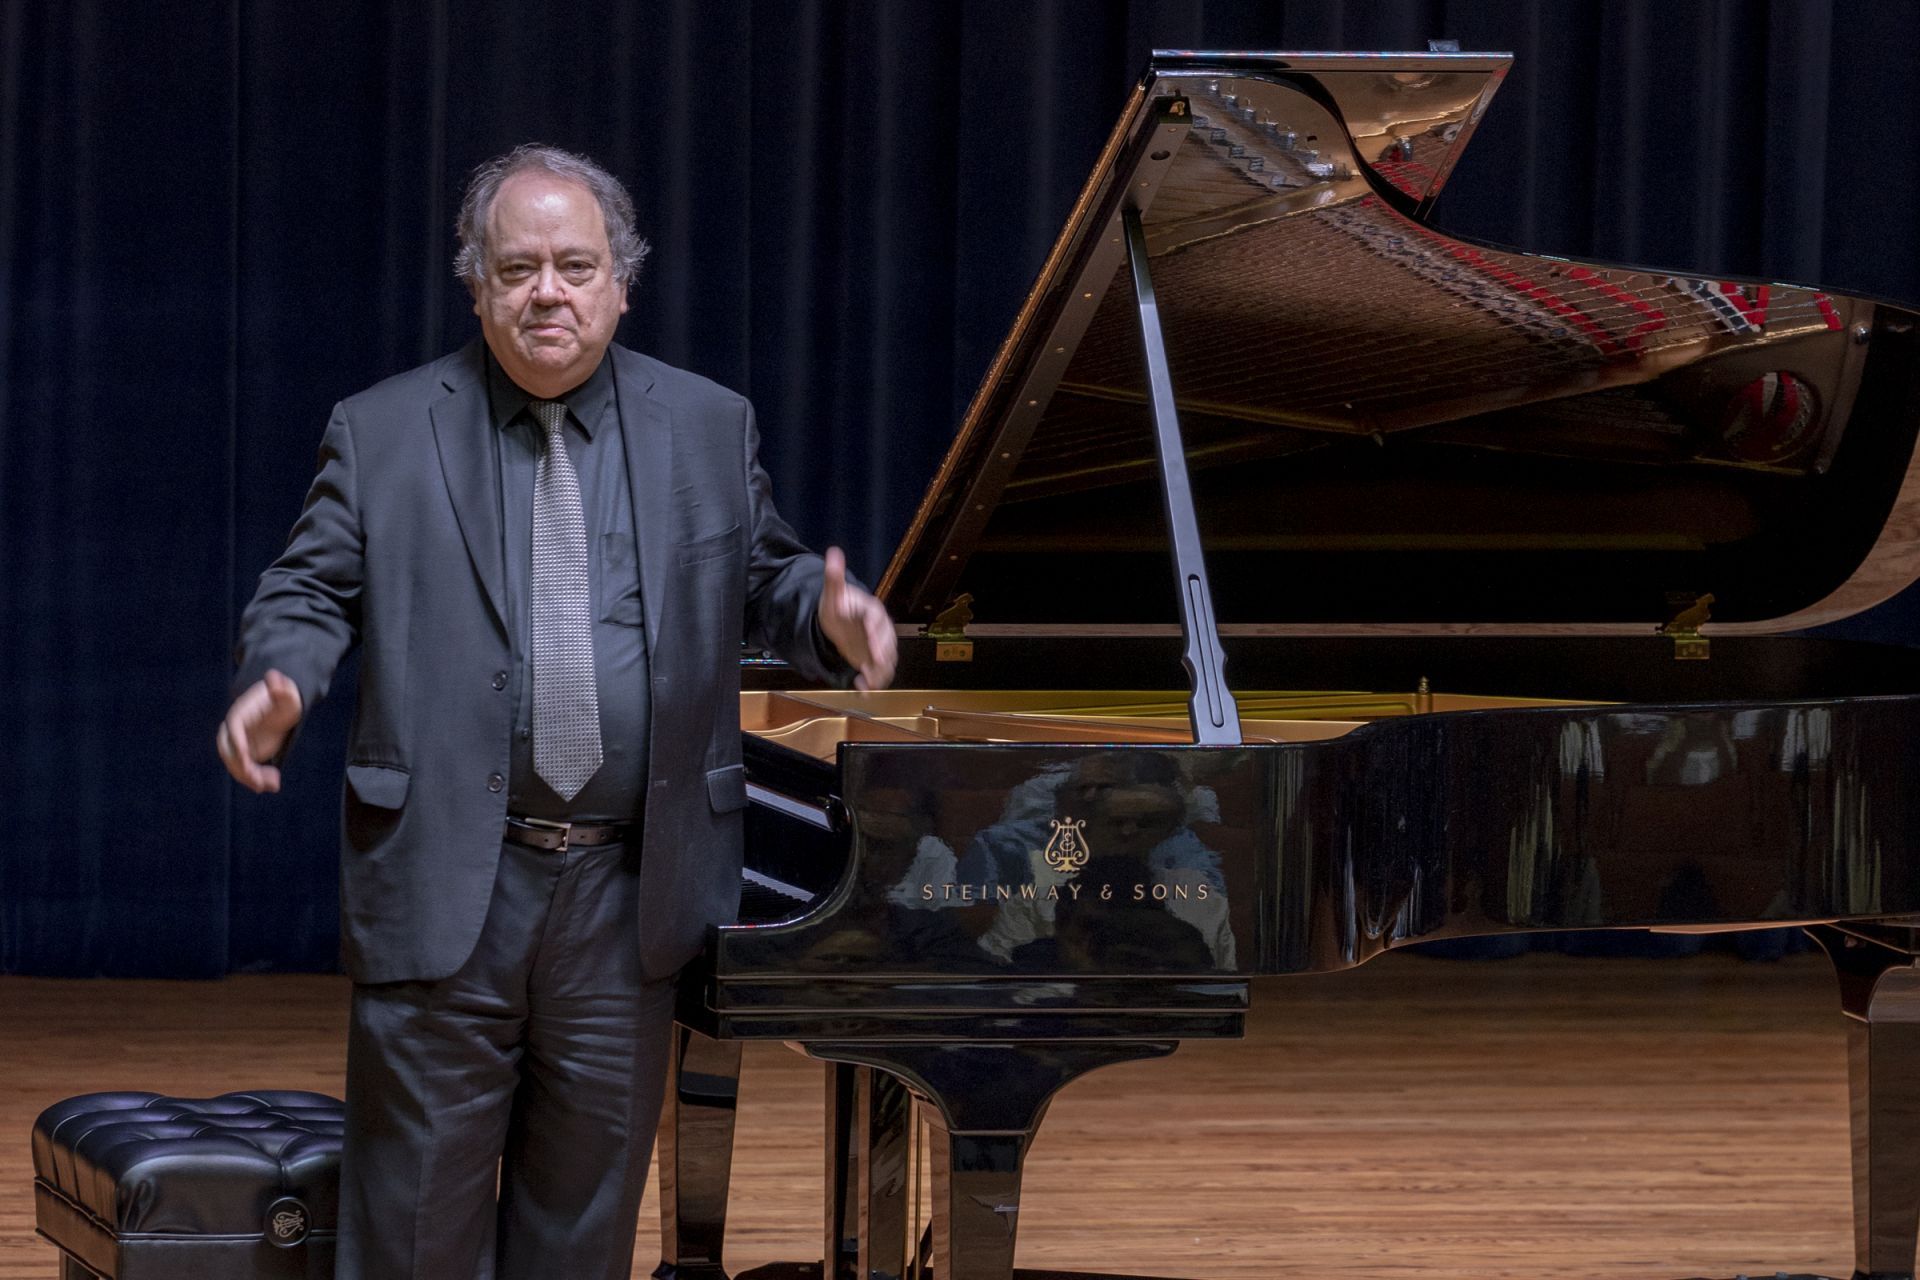 Internationally-renowned pianist Jeffrey Swann '69 gives a performance.